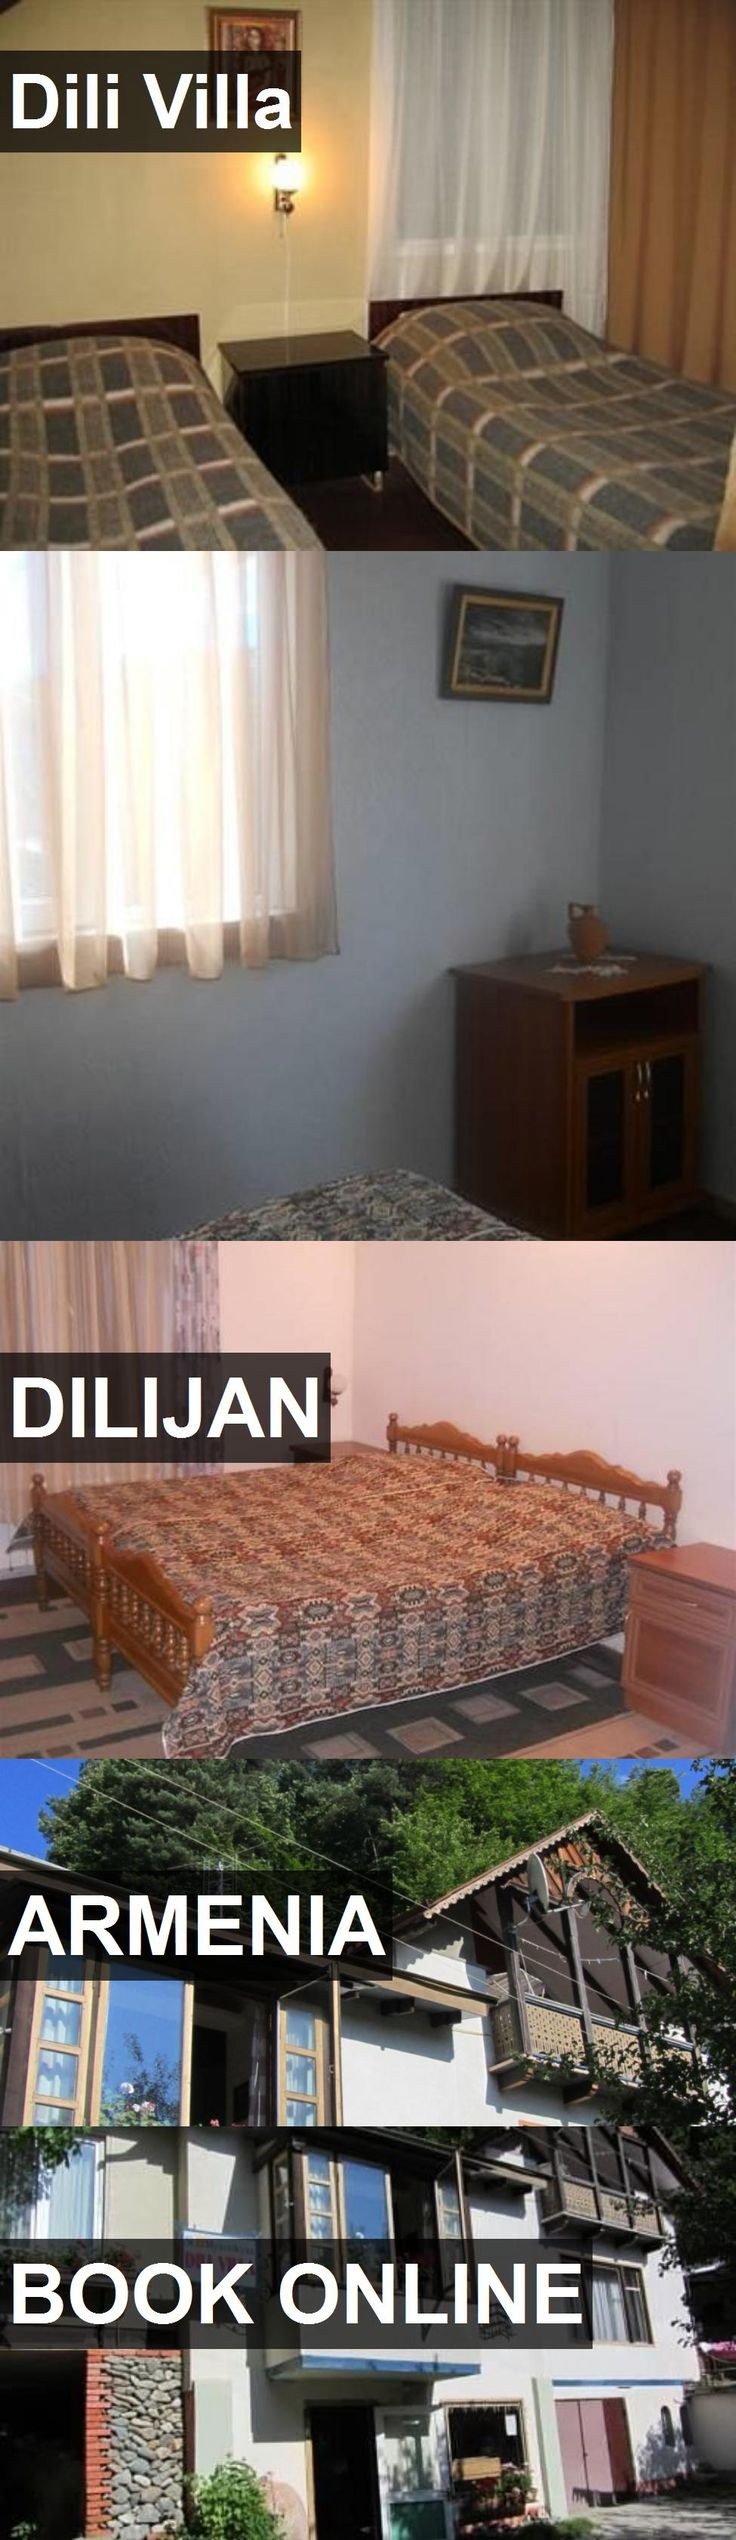 Hotel Dili Villa in Dilijan, Armenia. For more information, photos, reviews and best prices please follow the link. #Armenia #Dilijan #travel #vacation #hotel